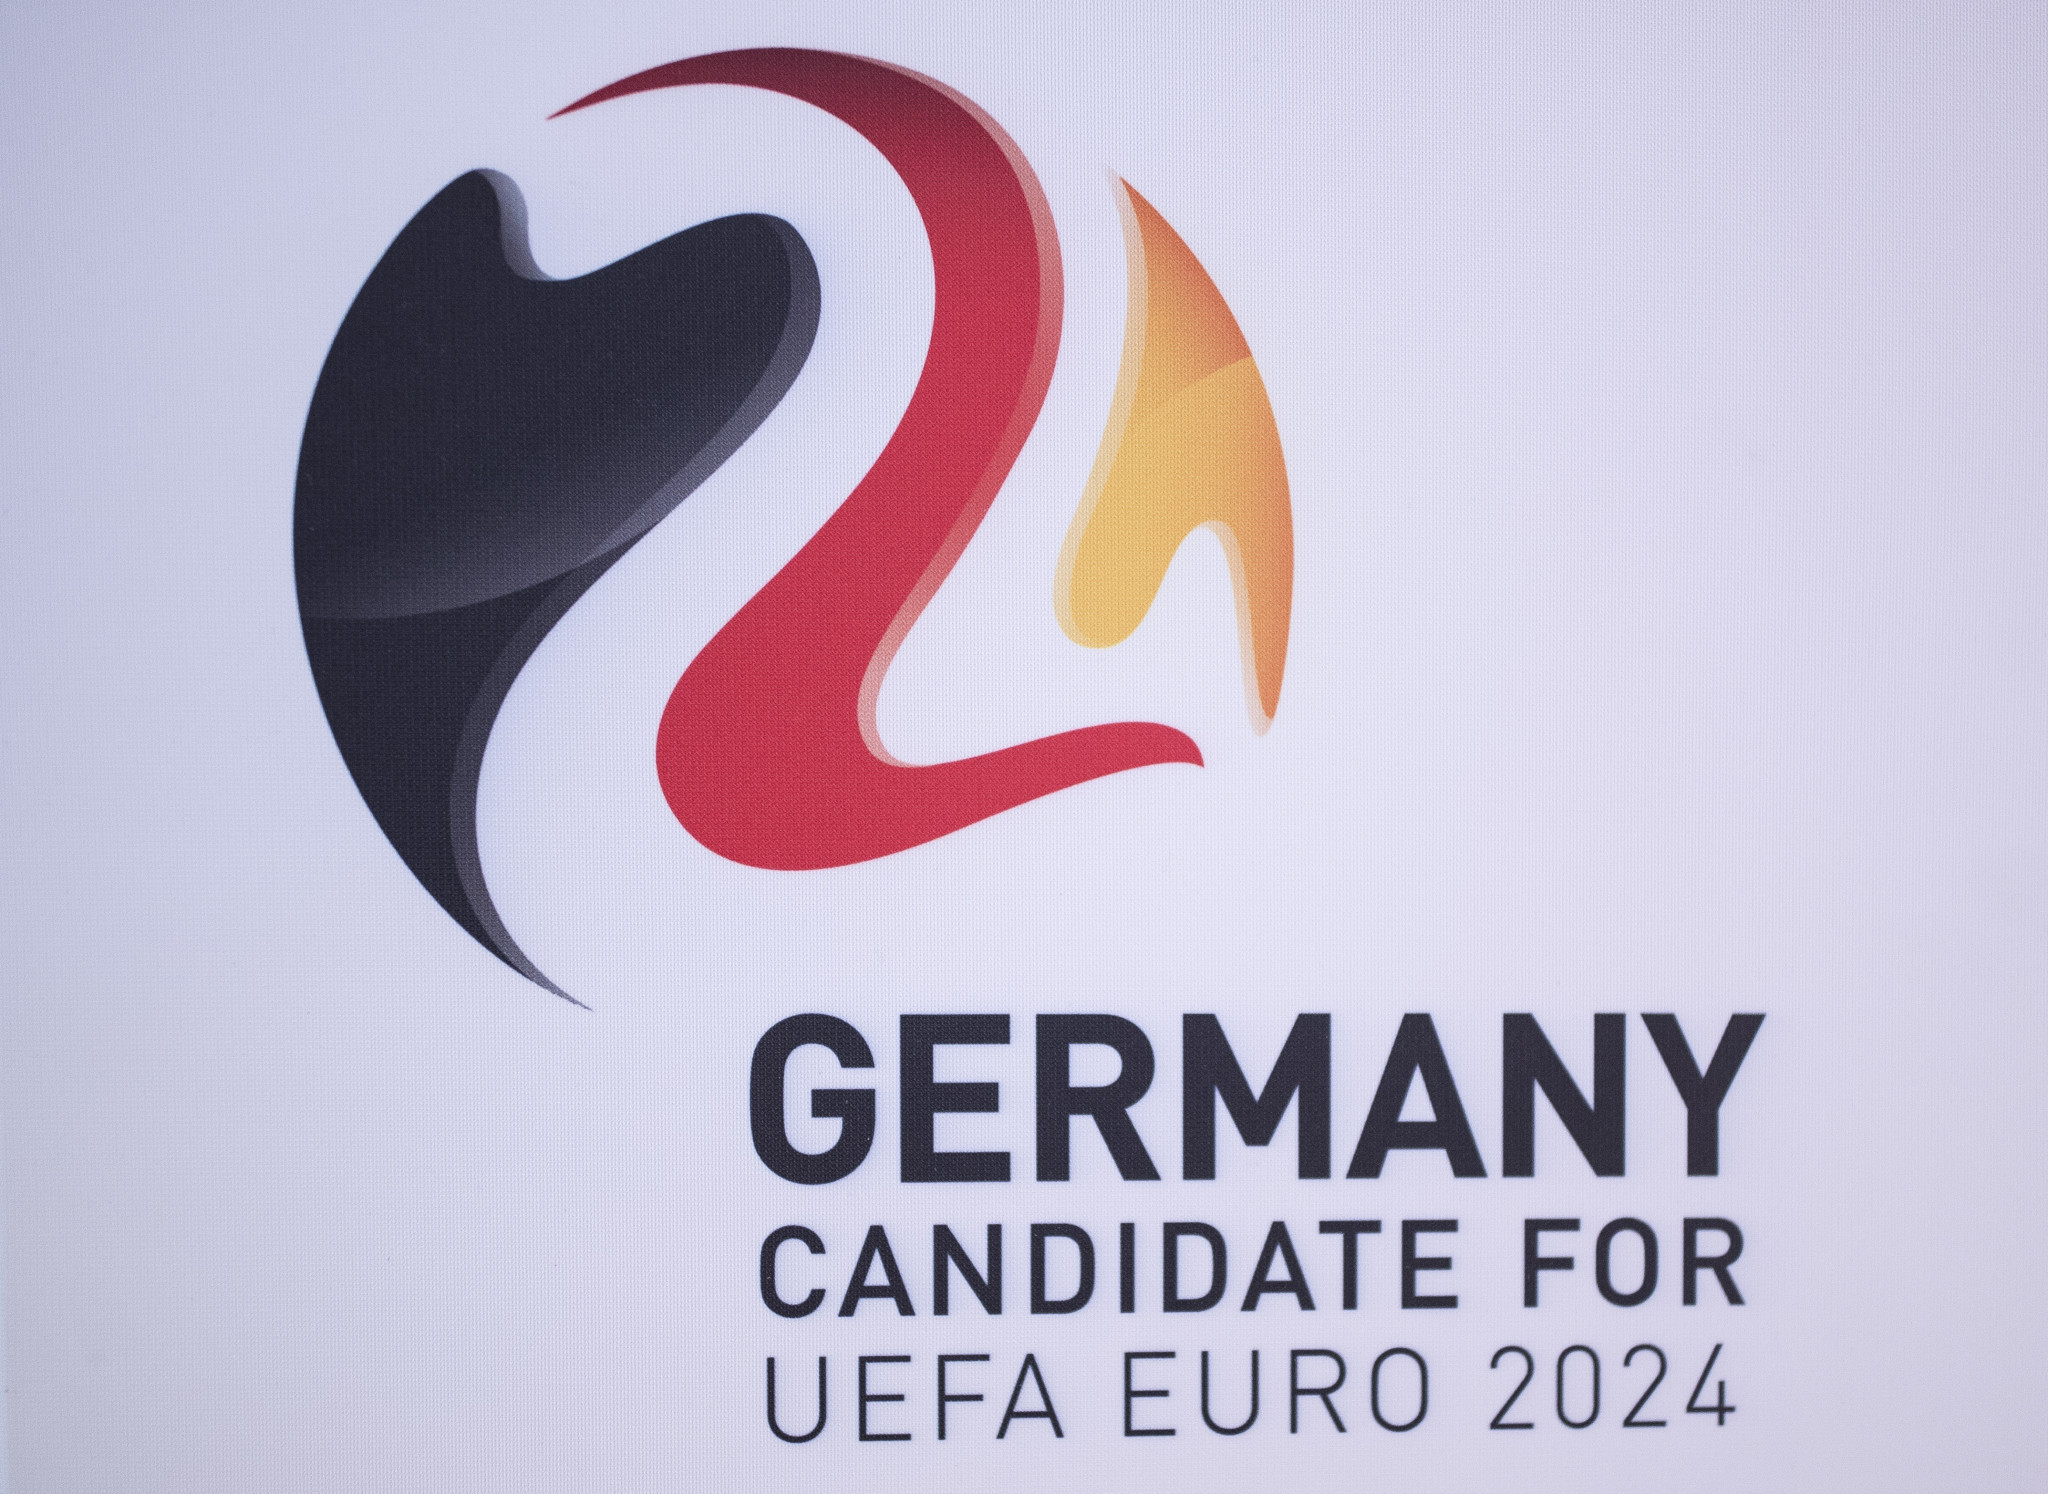 DFB claim high levels of domestic support for Germany's Euro 2024 bid